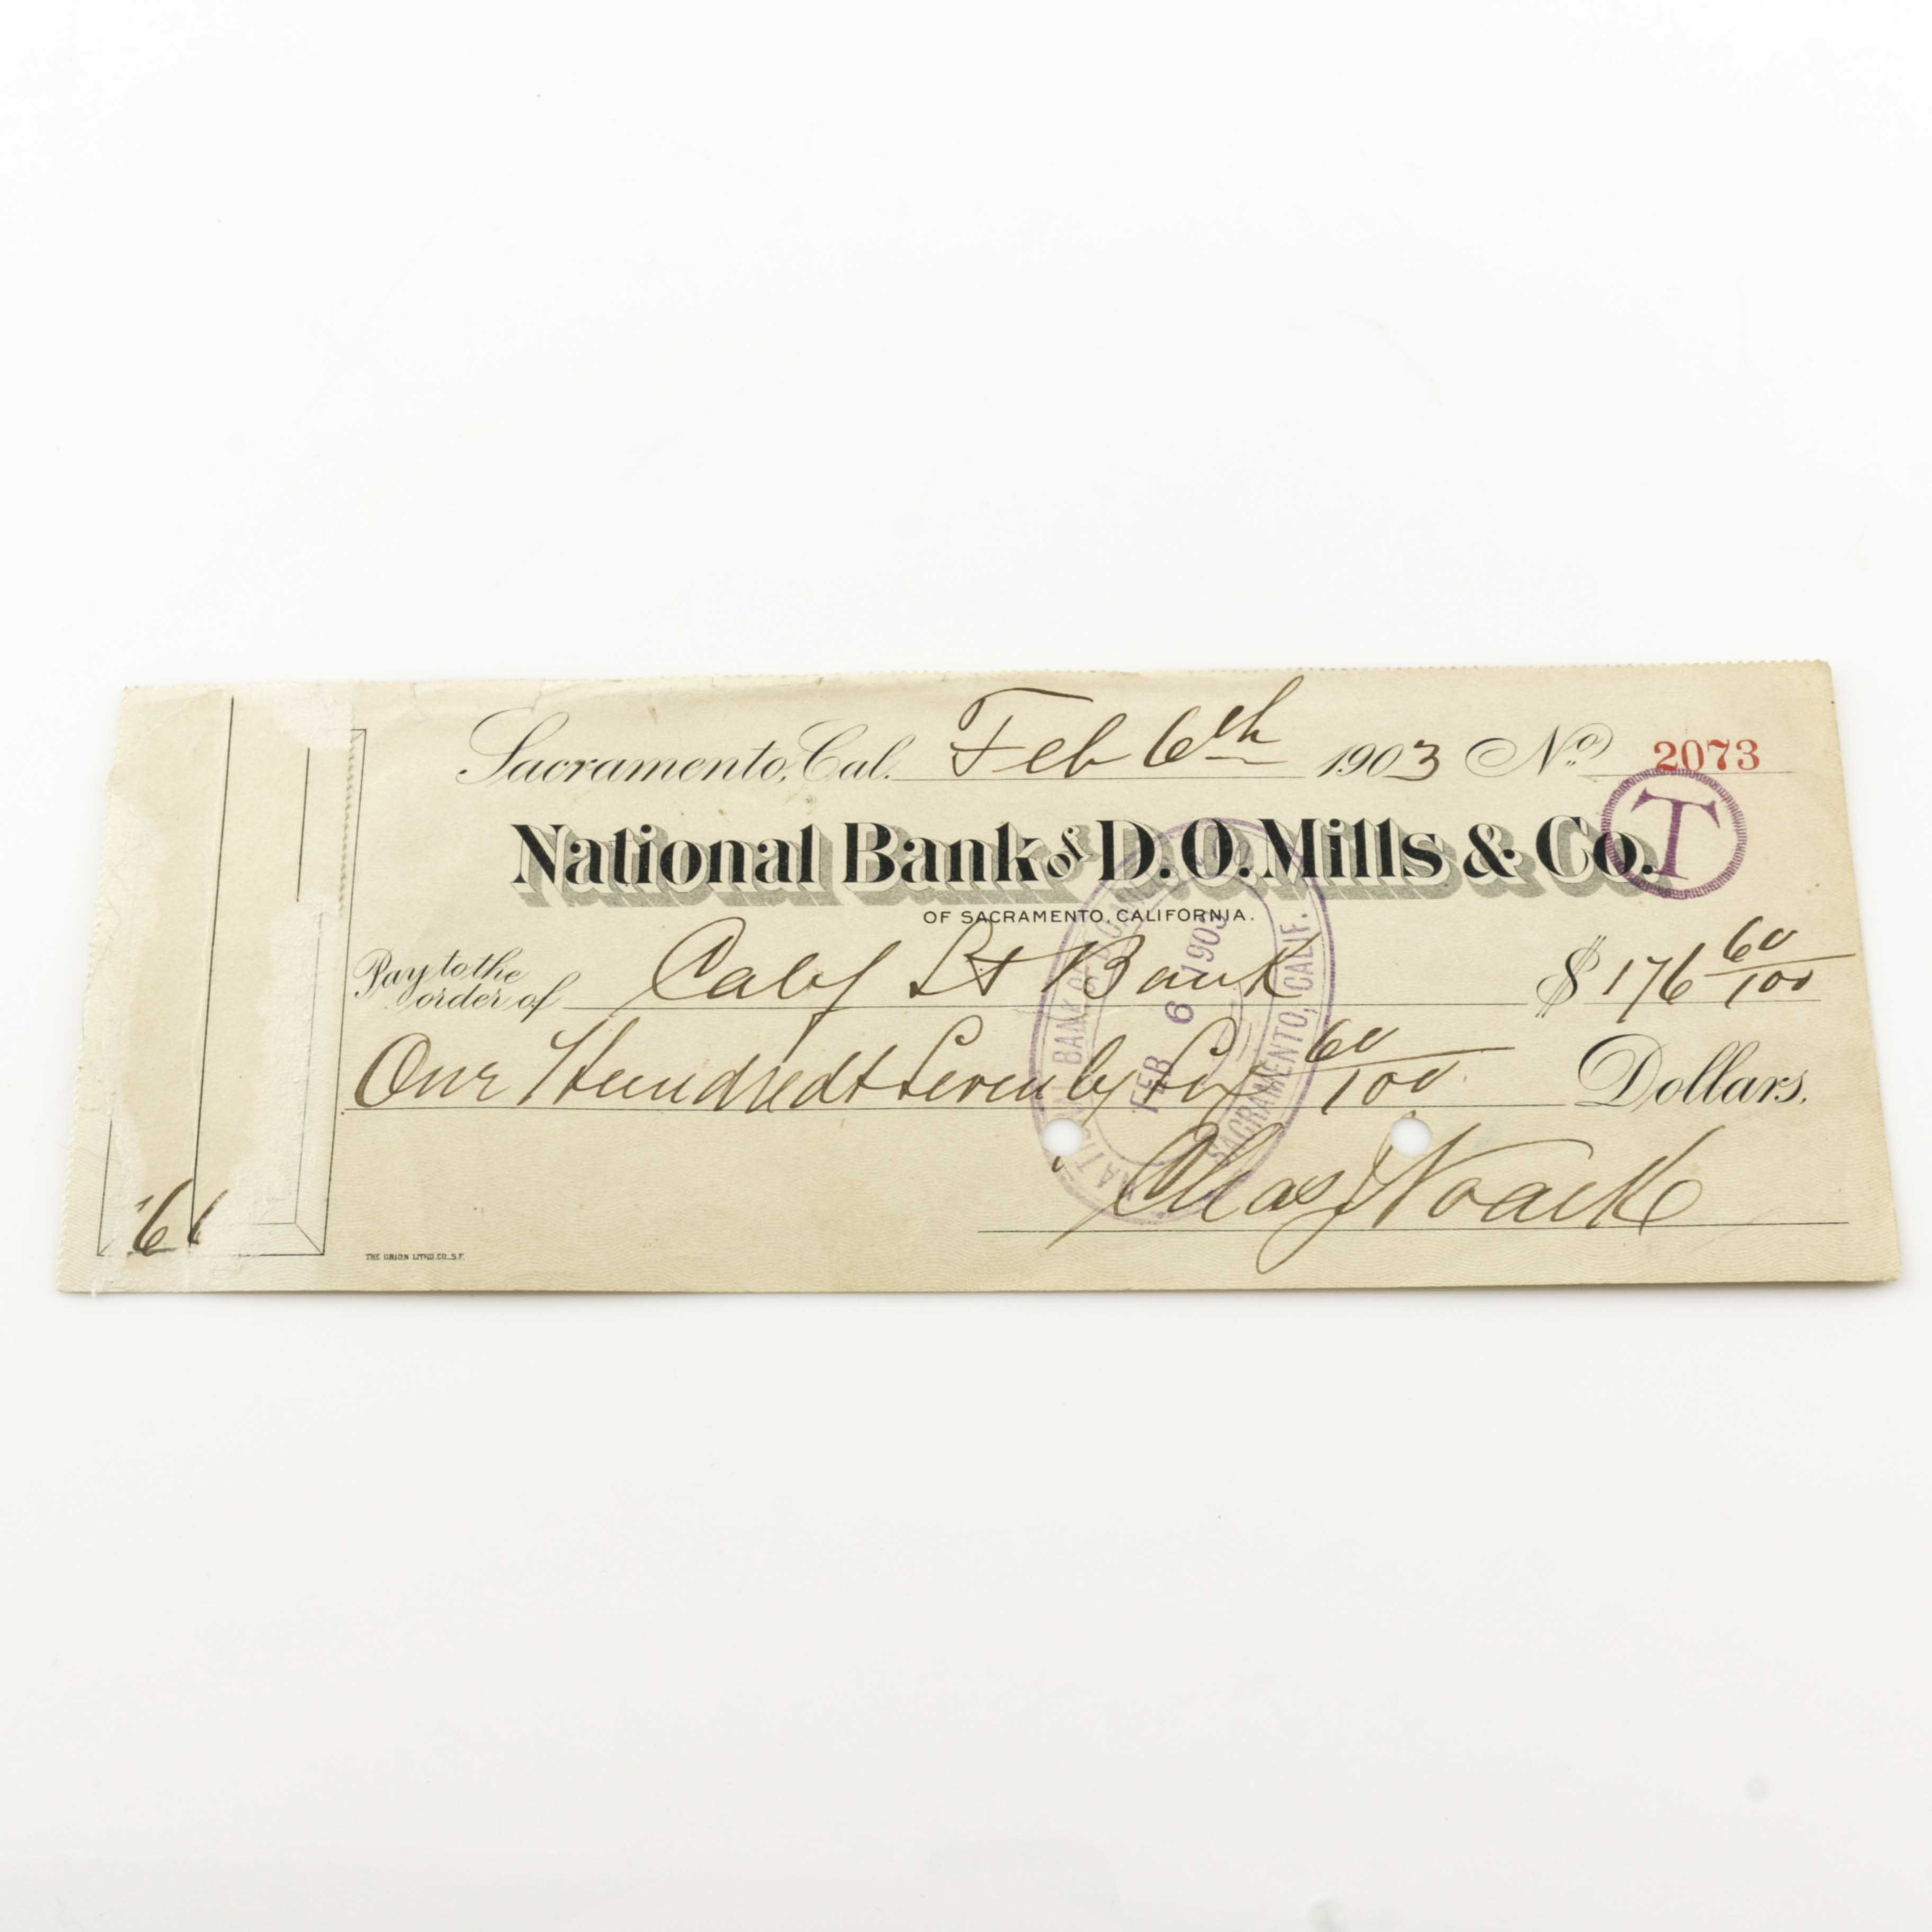 Cancelled Check from the National Bank of D.O. Mills & Co.